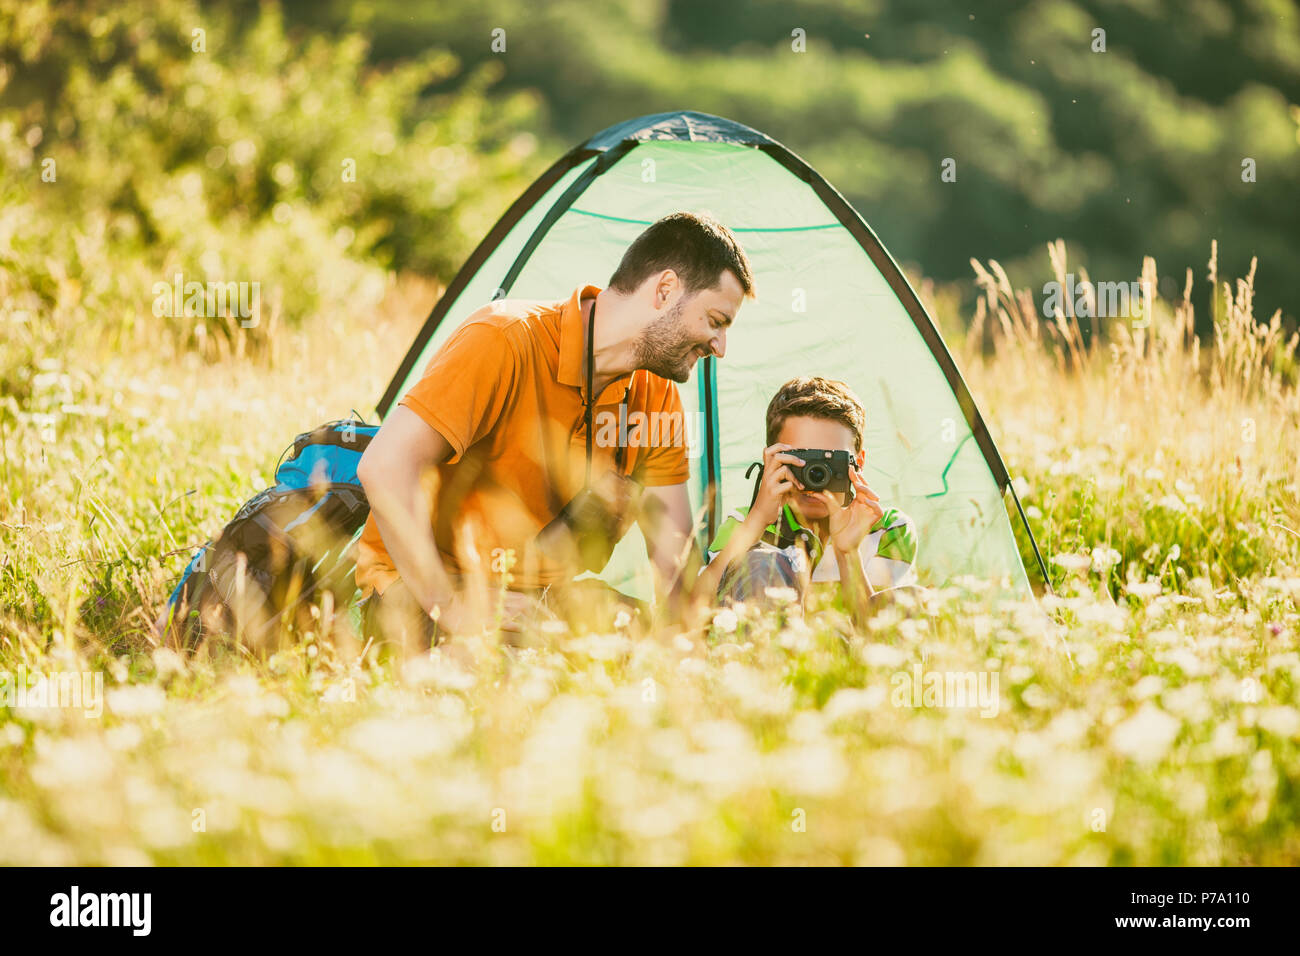 Father and son are camping in nature. Little boy is photographing. - Stock Image